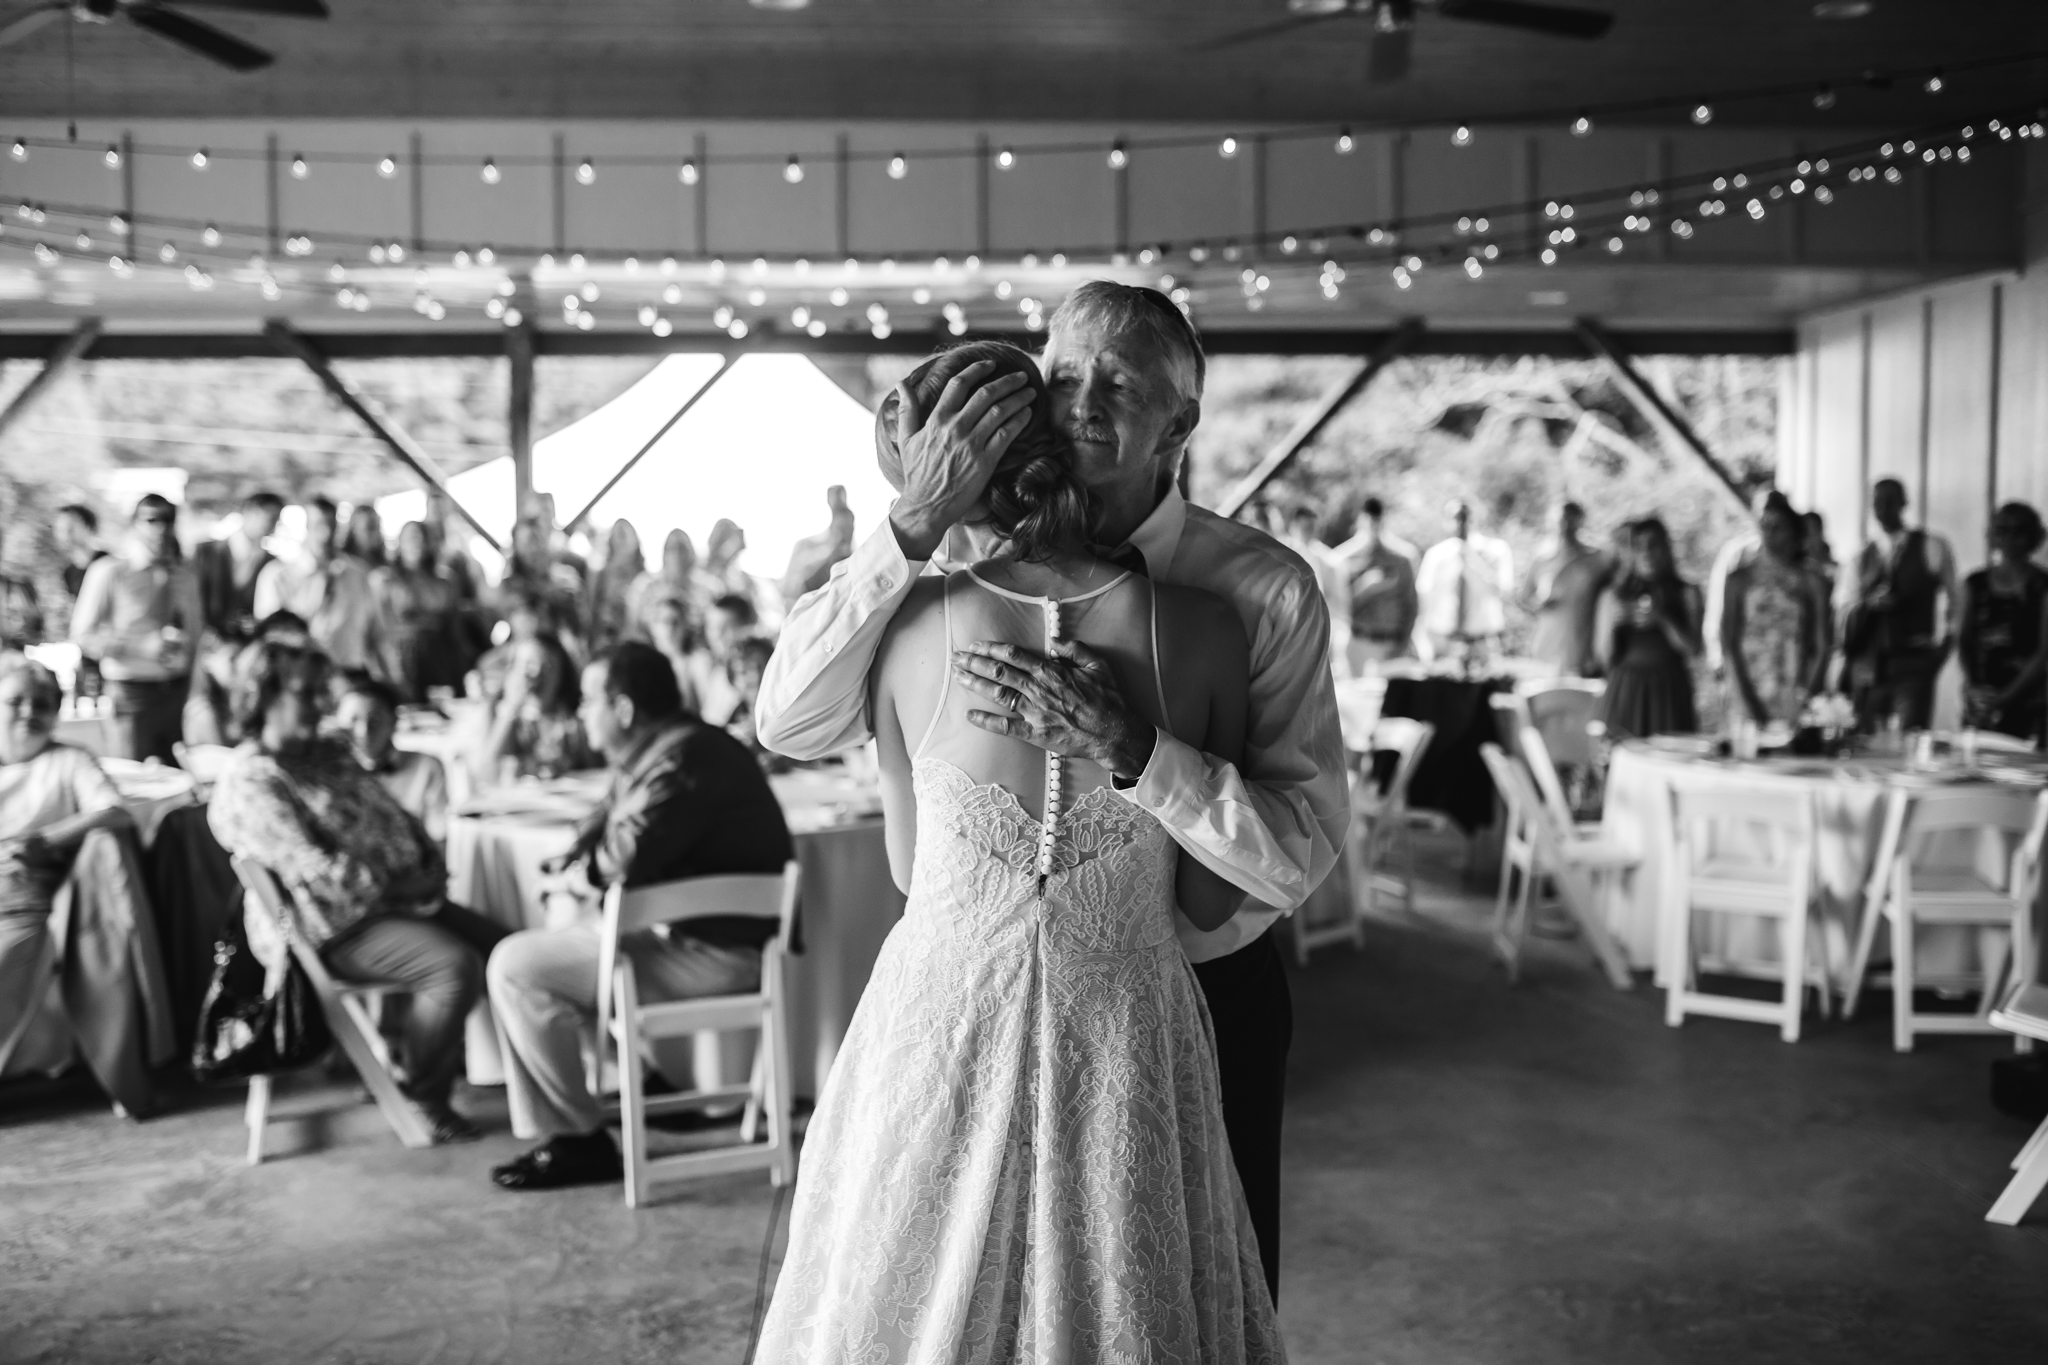 saddlewoodsfarms-pegram-wedding-murfreesboro-wedding-photographer-thewarmtharoundyou (7 of 17).jpg